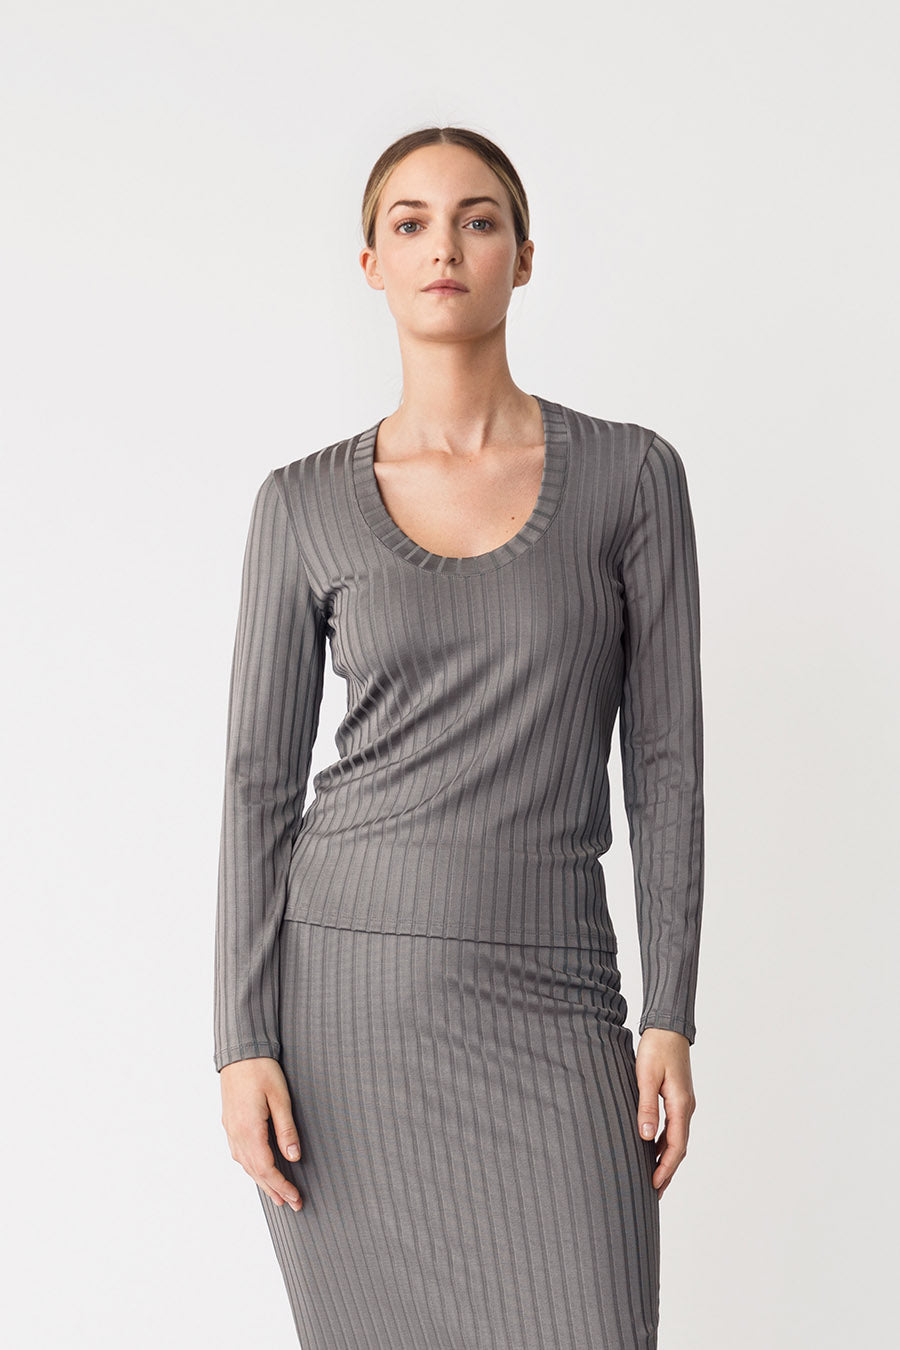 PETRONELLA TOP - DARK GREY